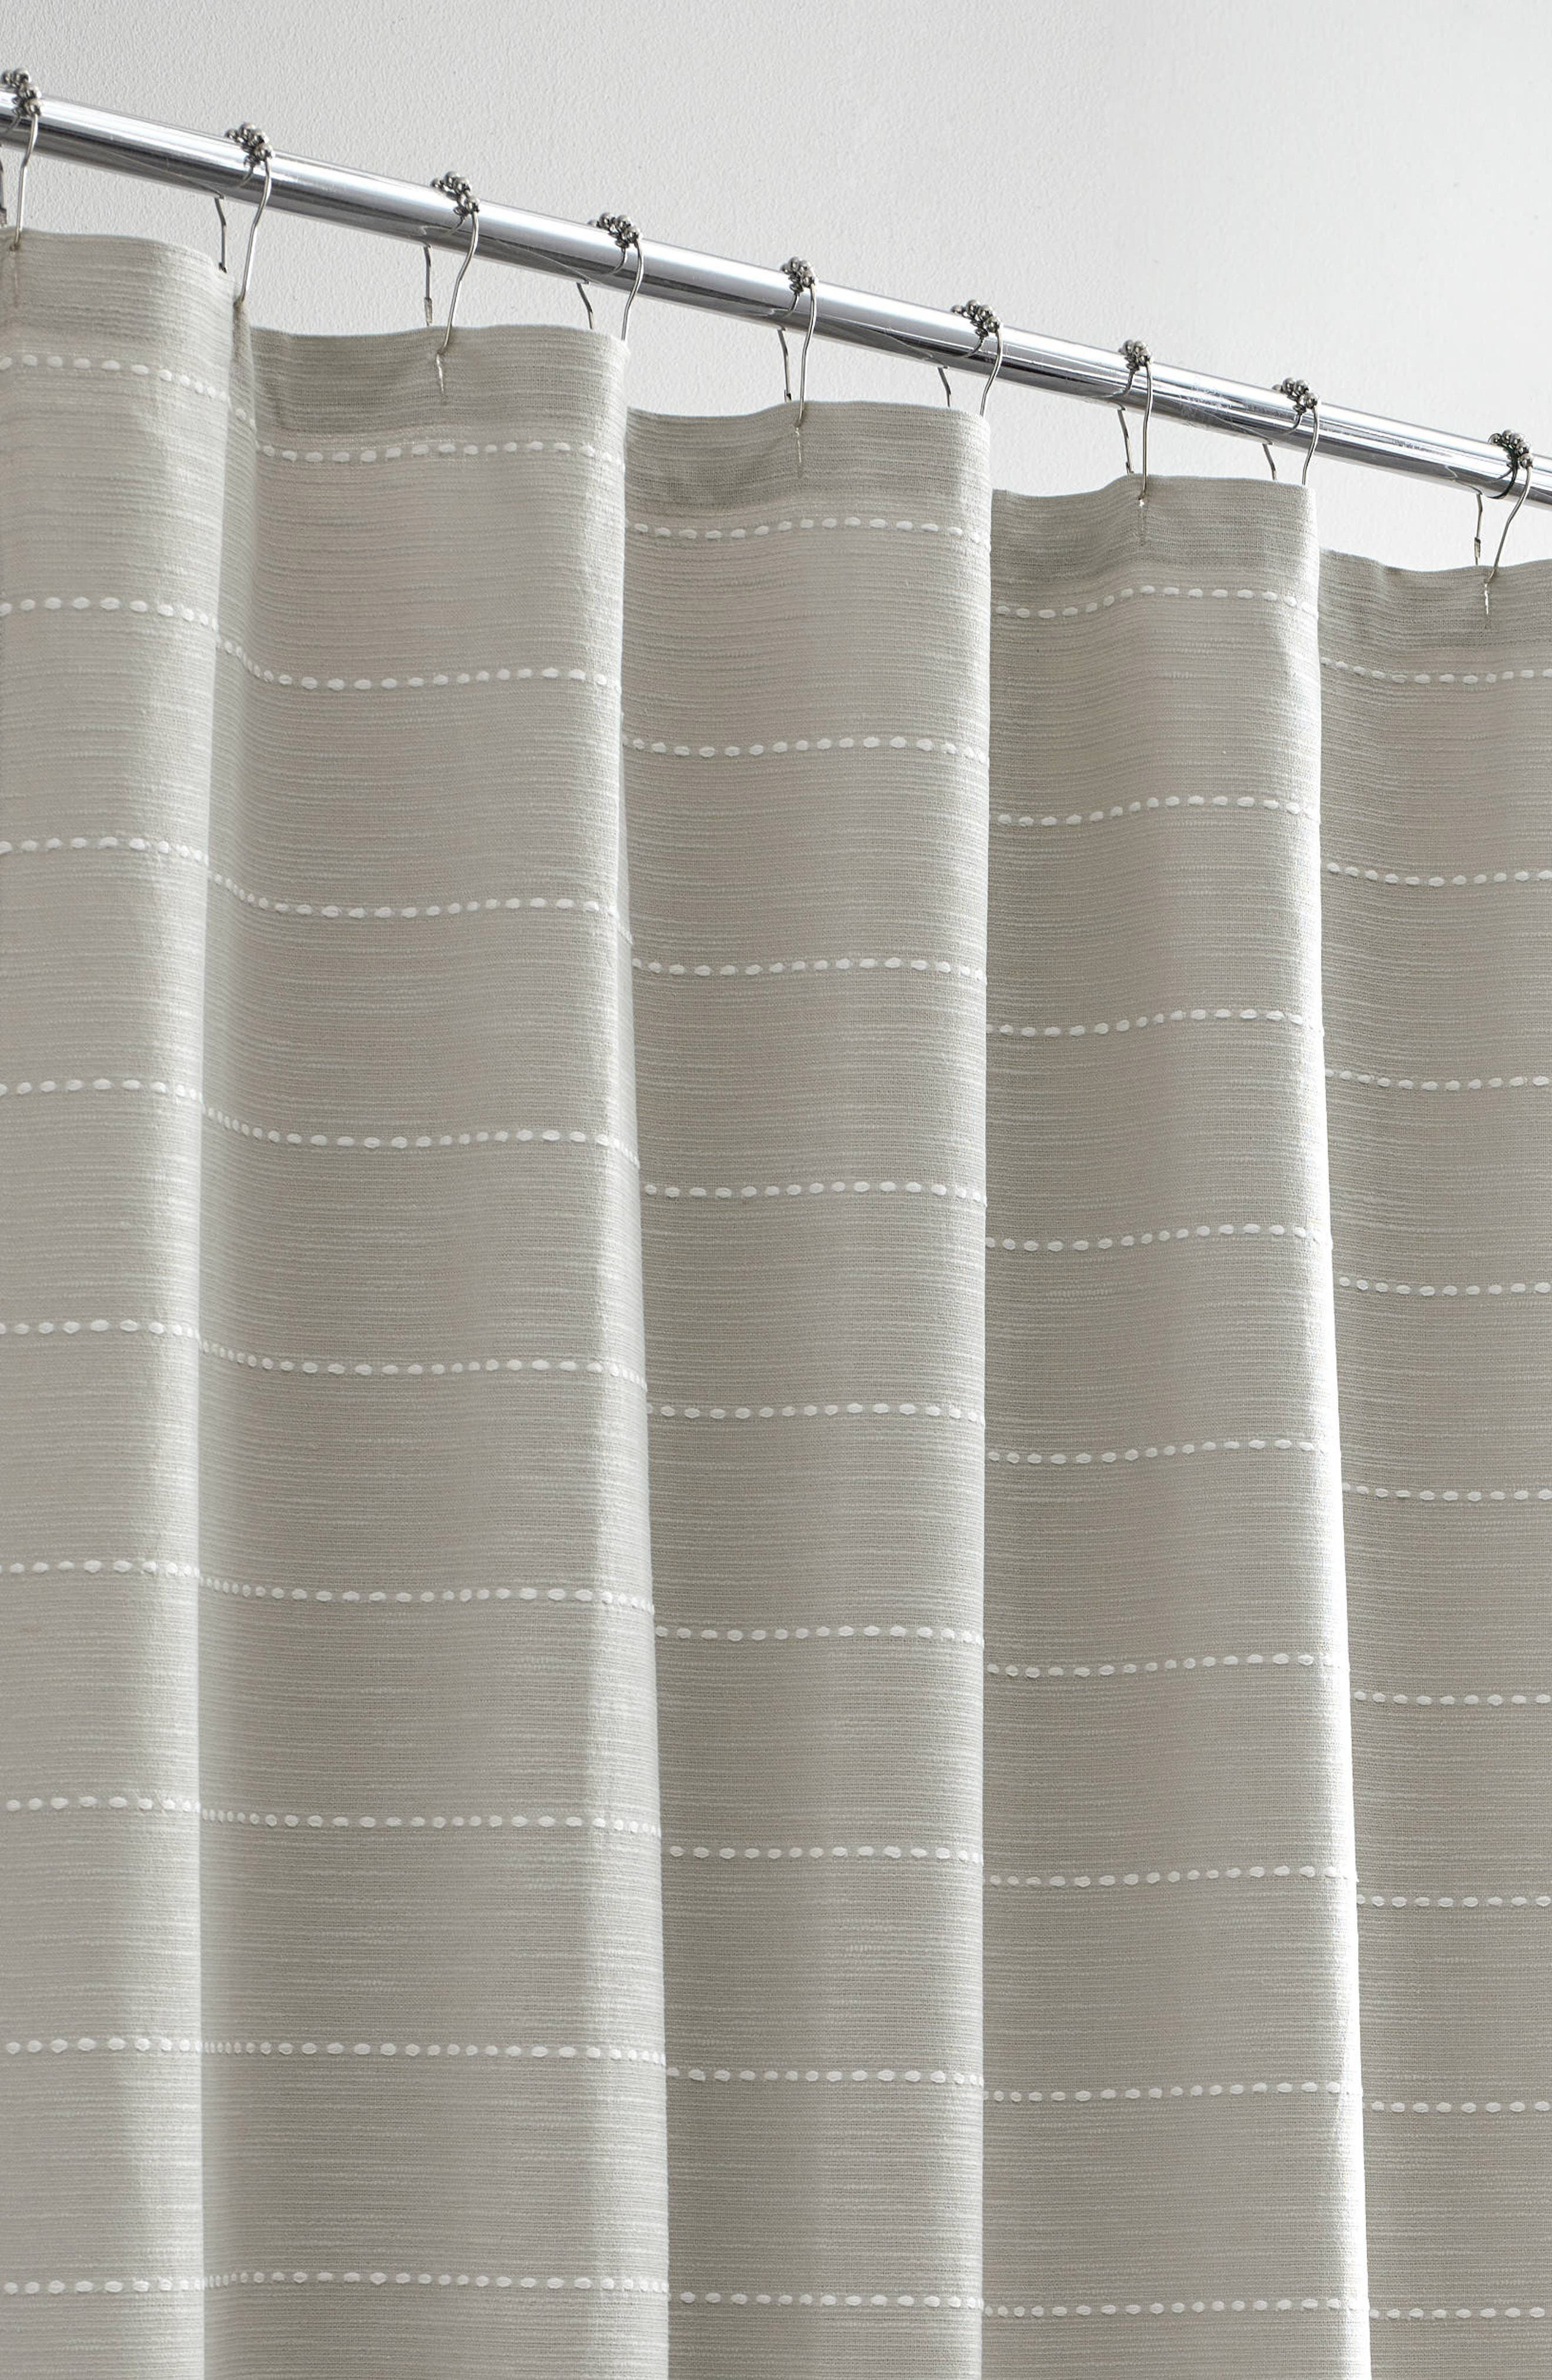 VERA WANG,                             Embroidered Stripe Shower Curtain,                             Alternate thumbnail 2, color,                             AQUARMARINE/ WHITE